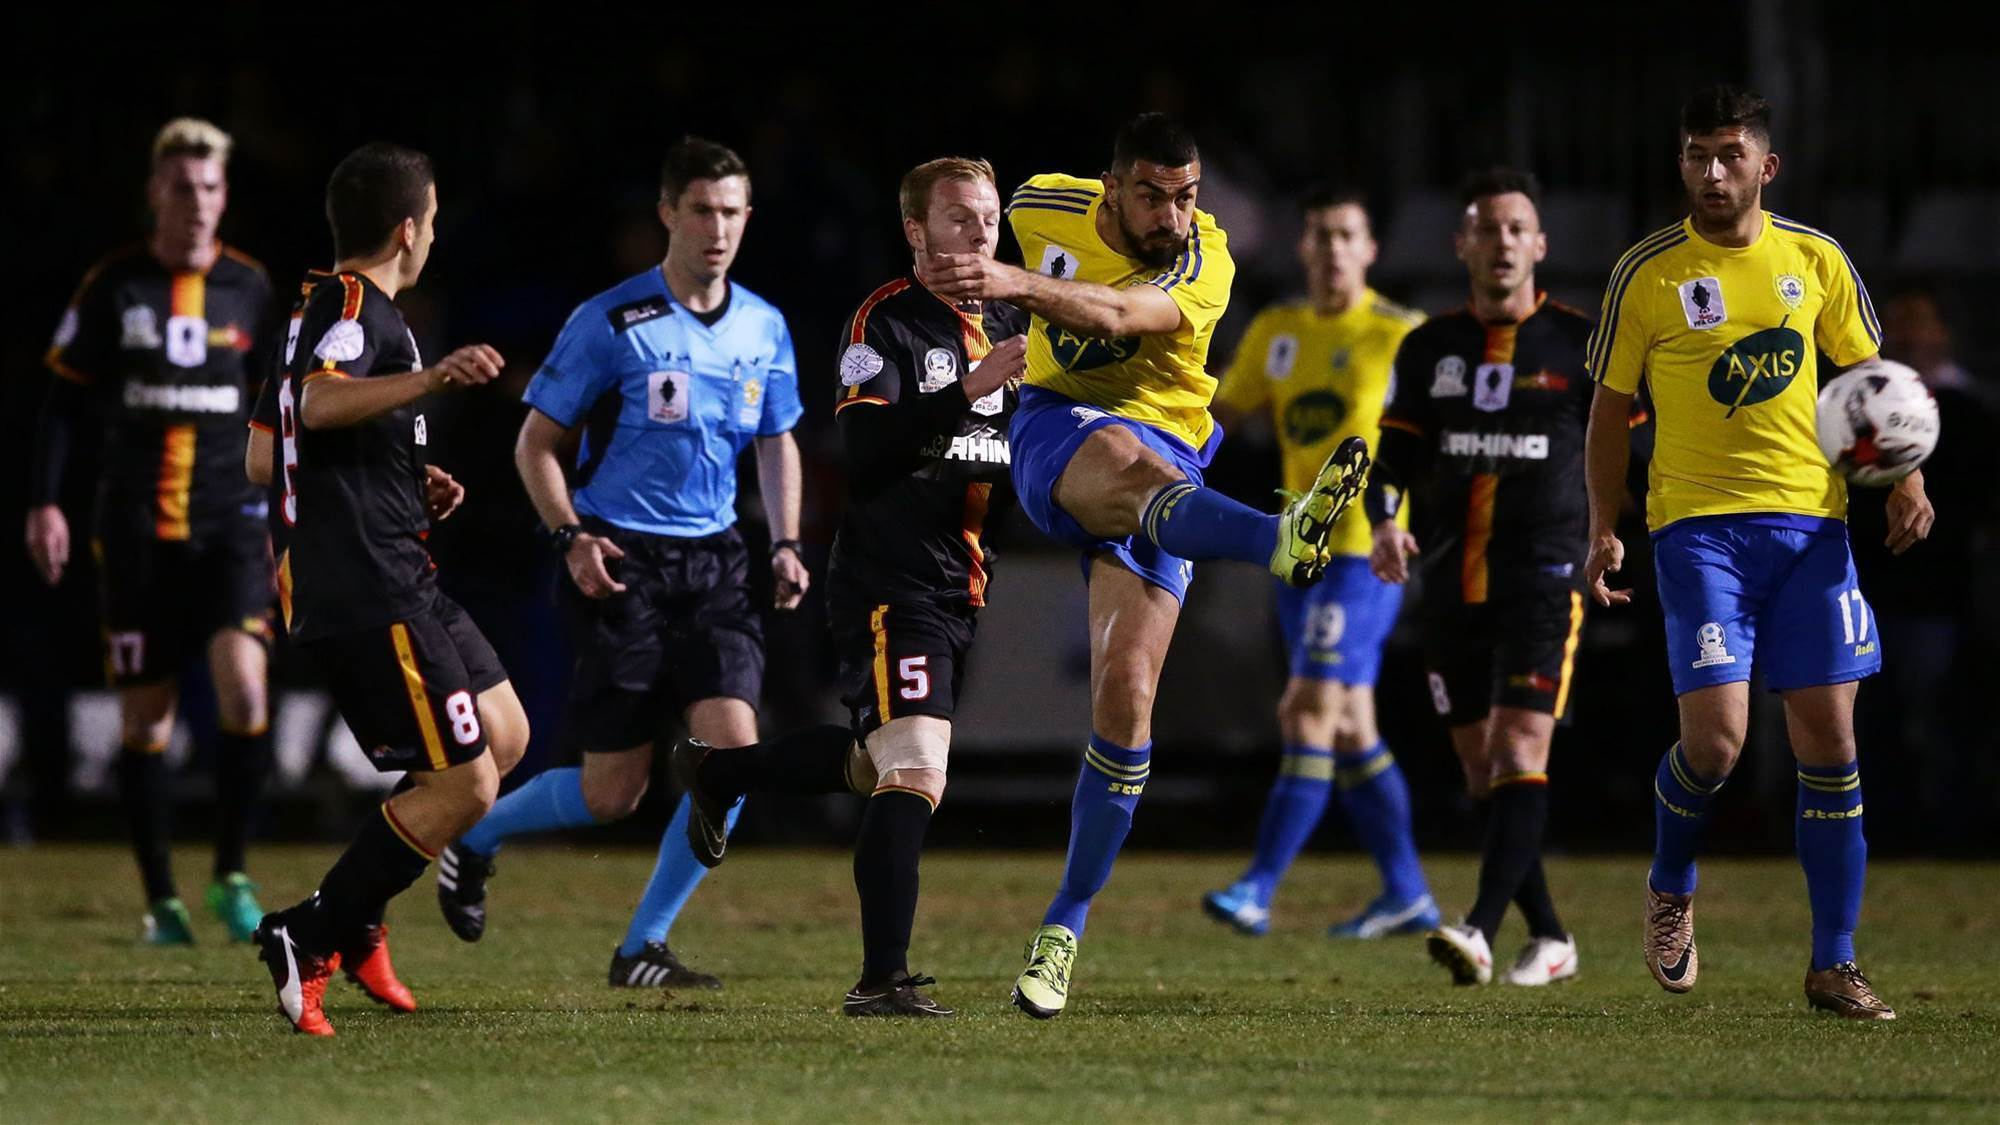 Berries' FFA Cup hero: I'm still numb